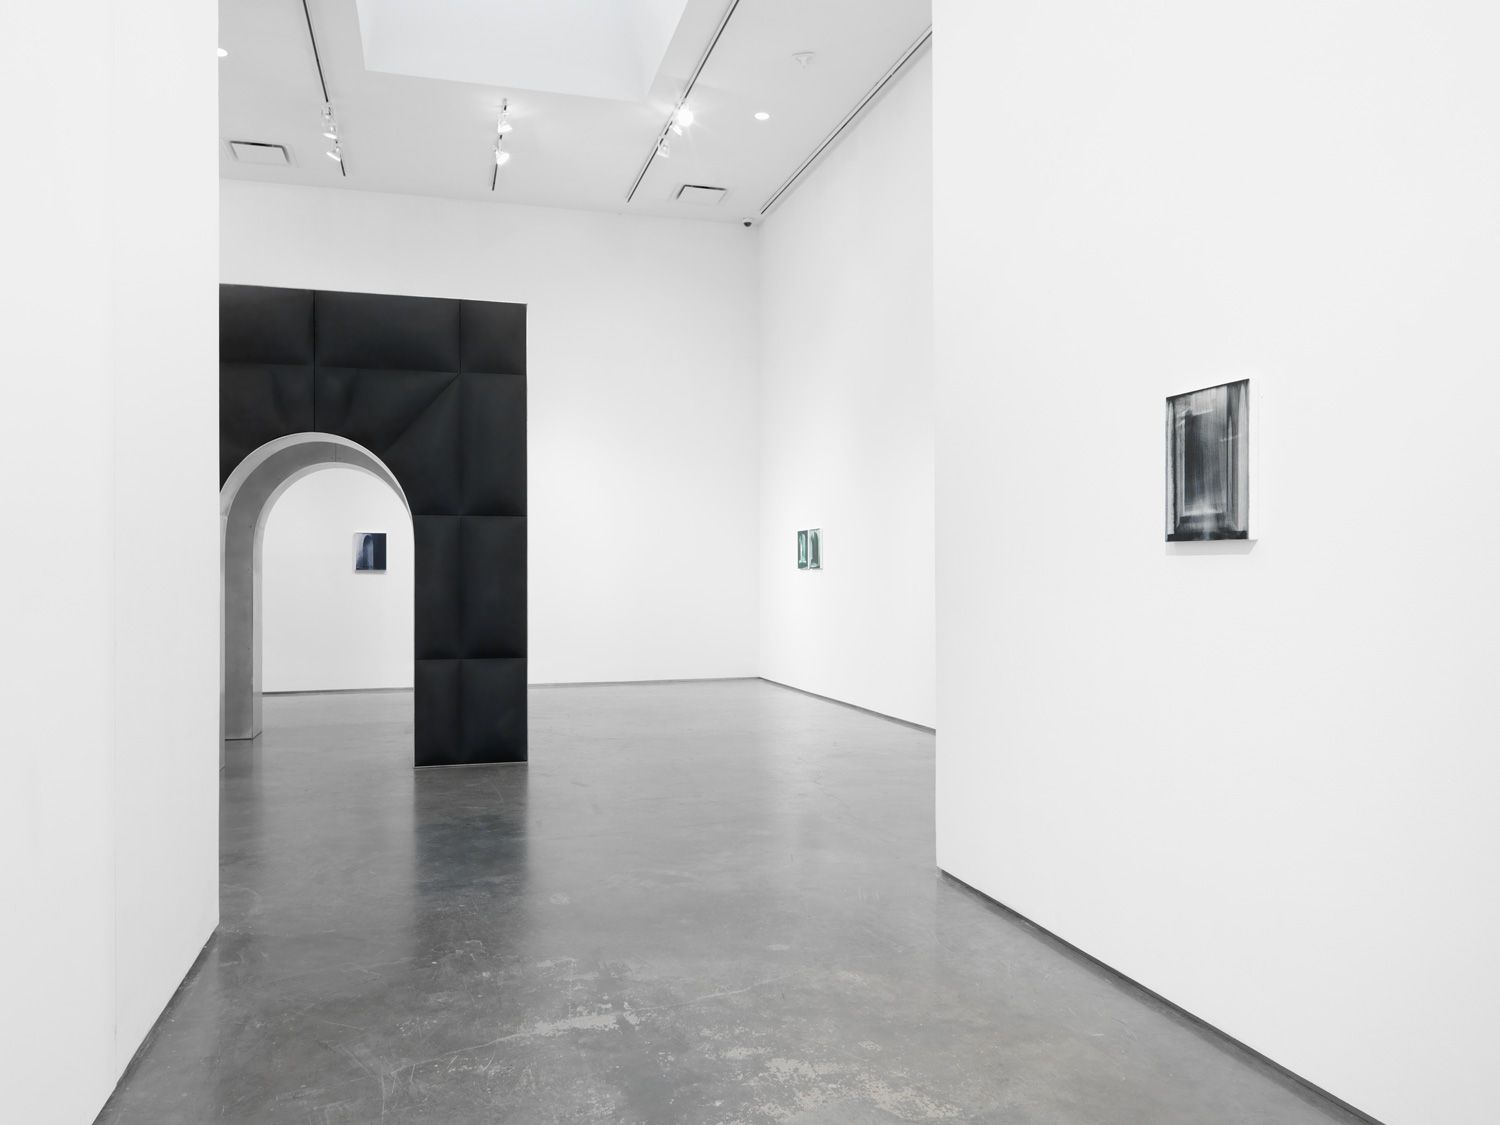 ARCHES (Installation View), Boesky Gallery, 2017